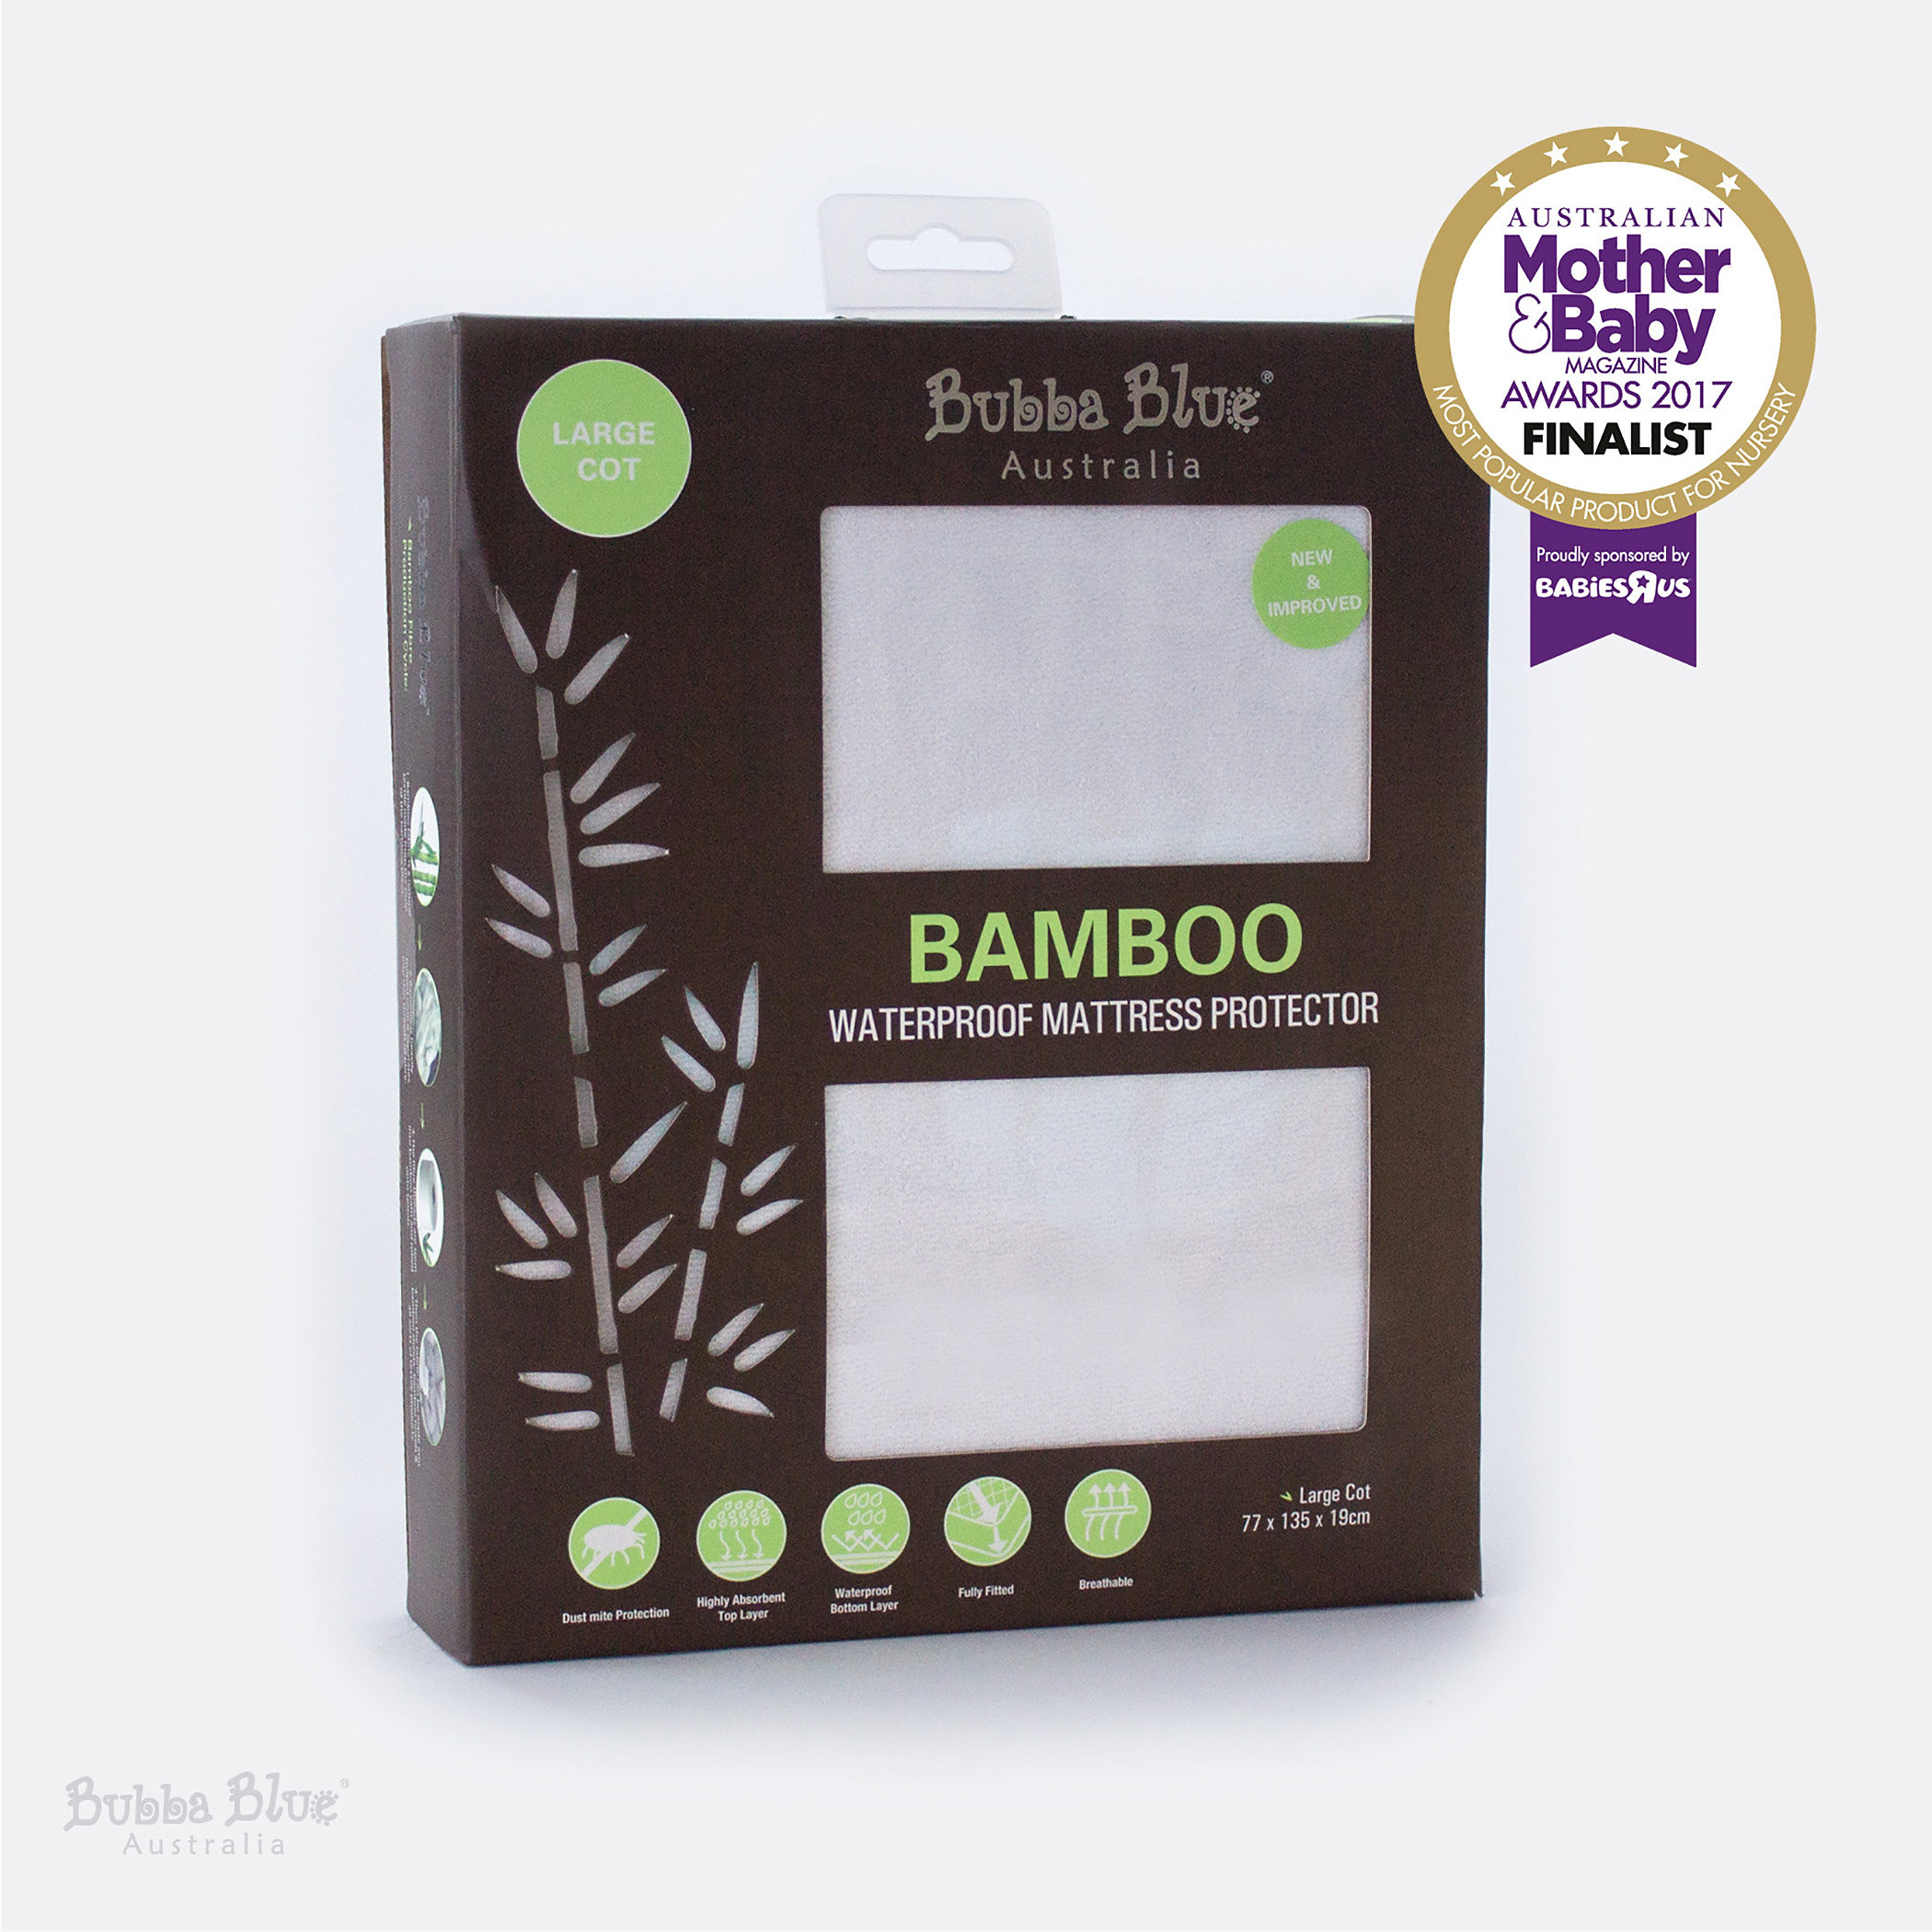 You and your baby can rest easy with our Bamboo-covered fitted Waterproof Mattress  Protector range. The waterproof underlay stops leakages to keep your ...